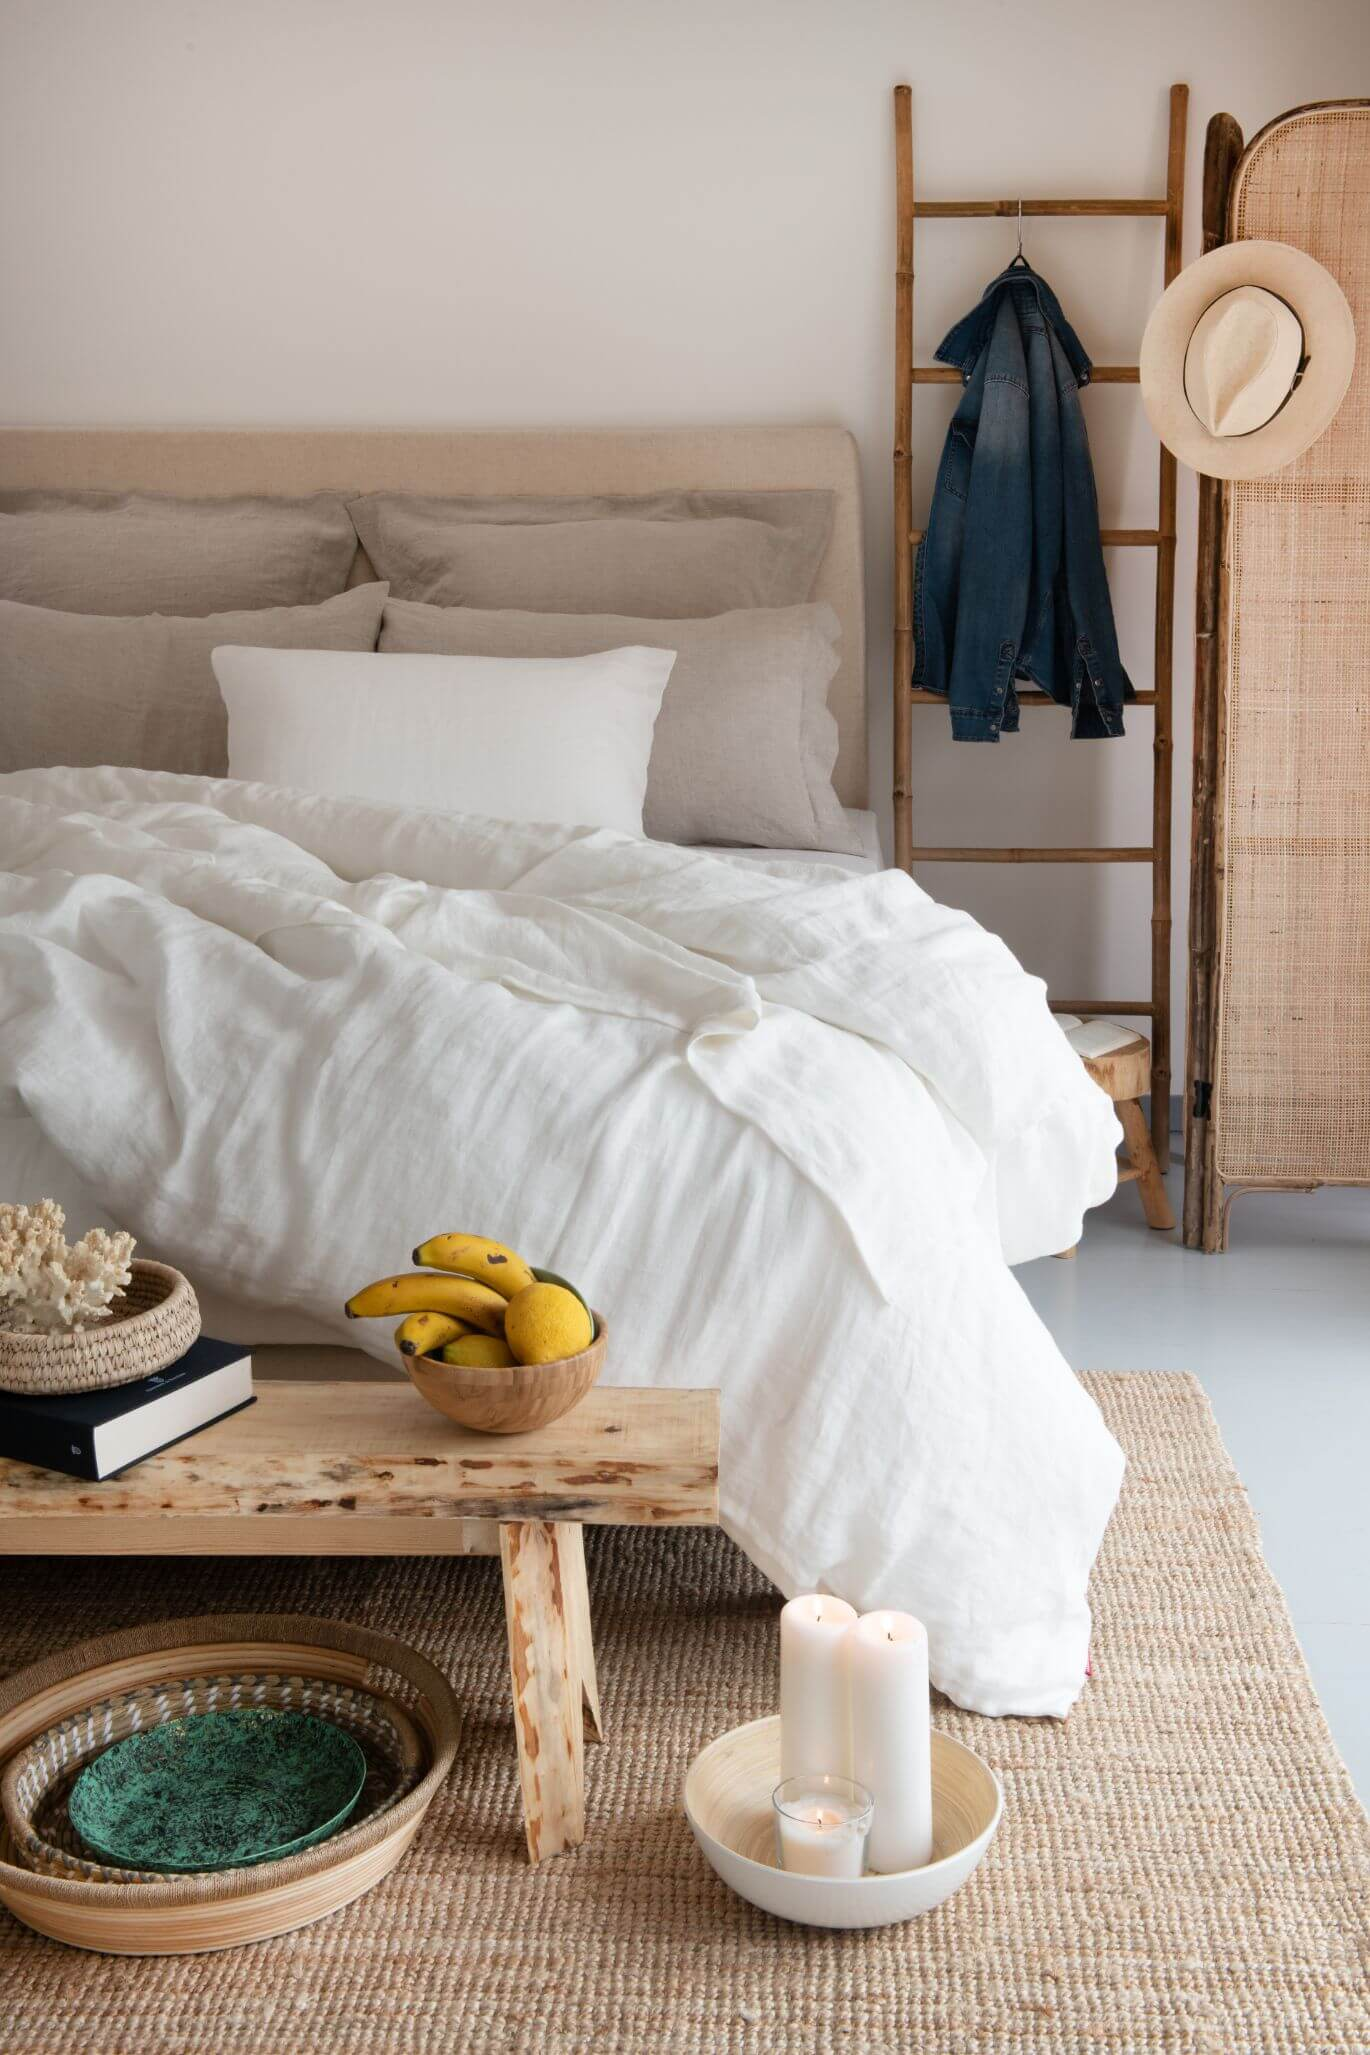 Marialma's White Hemp bed sheets in a sustainable bedroom